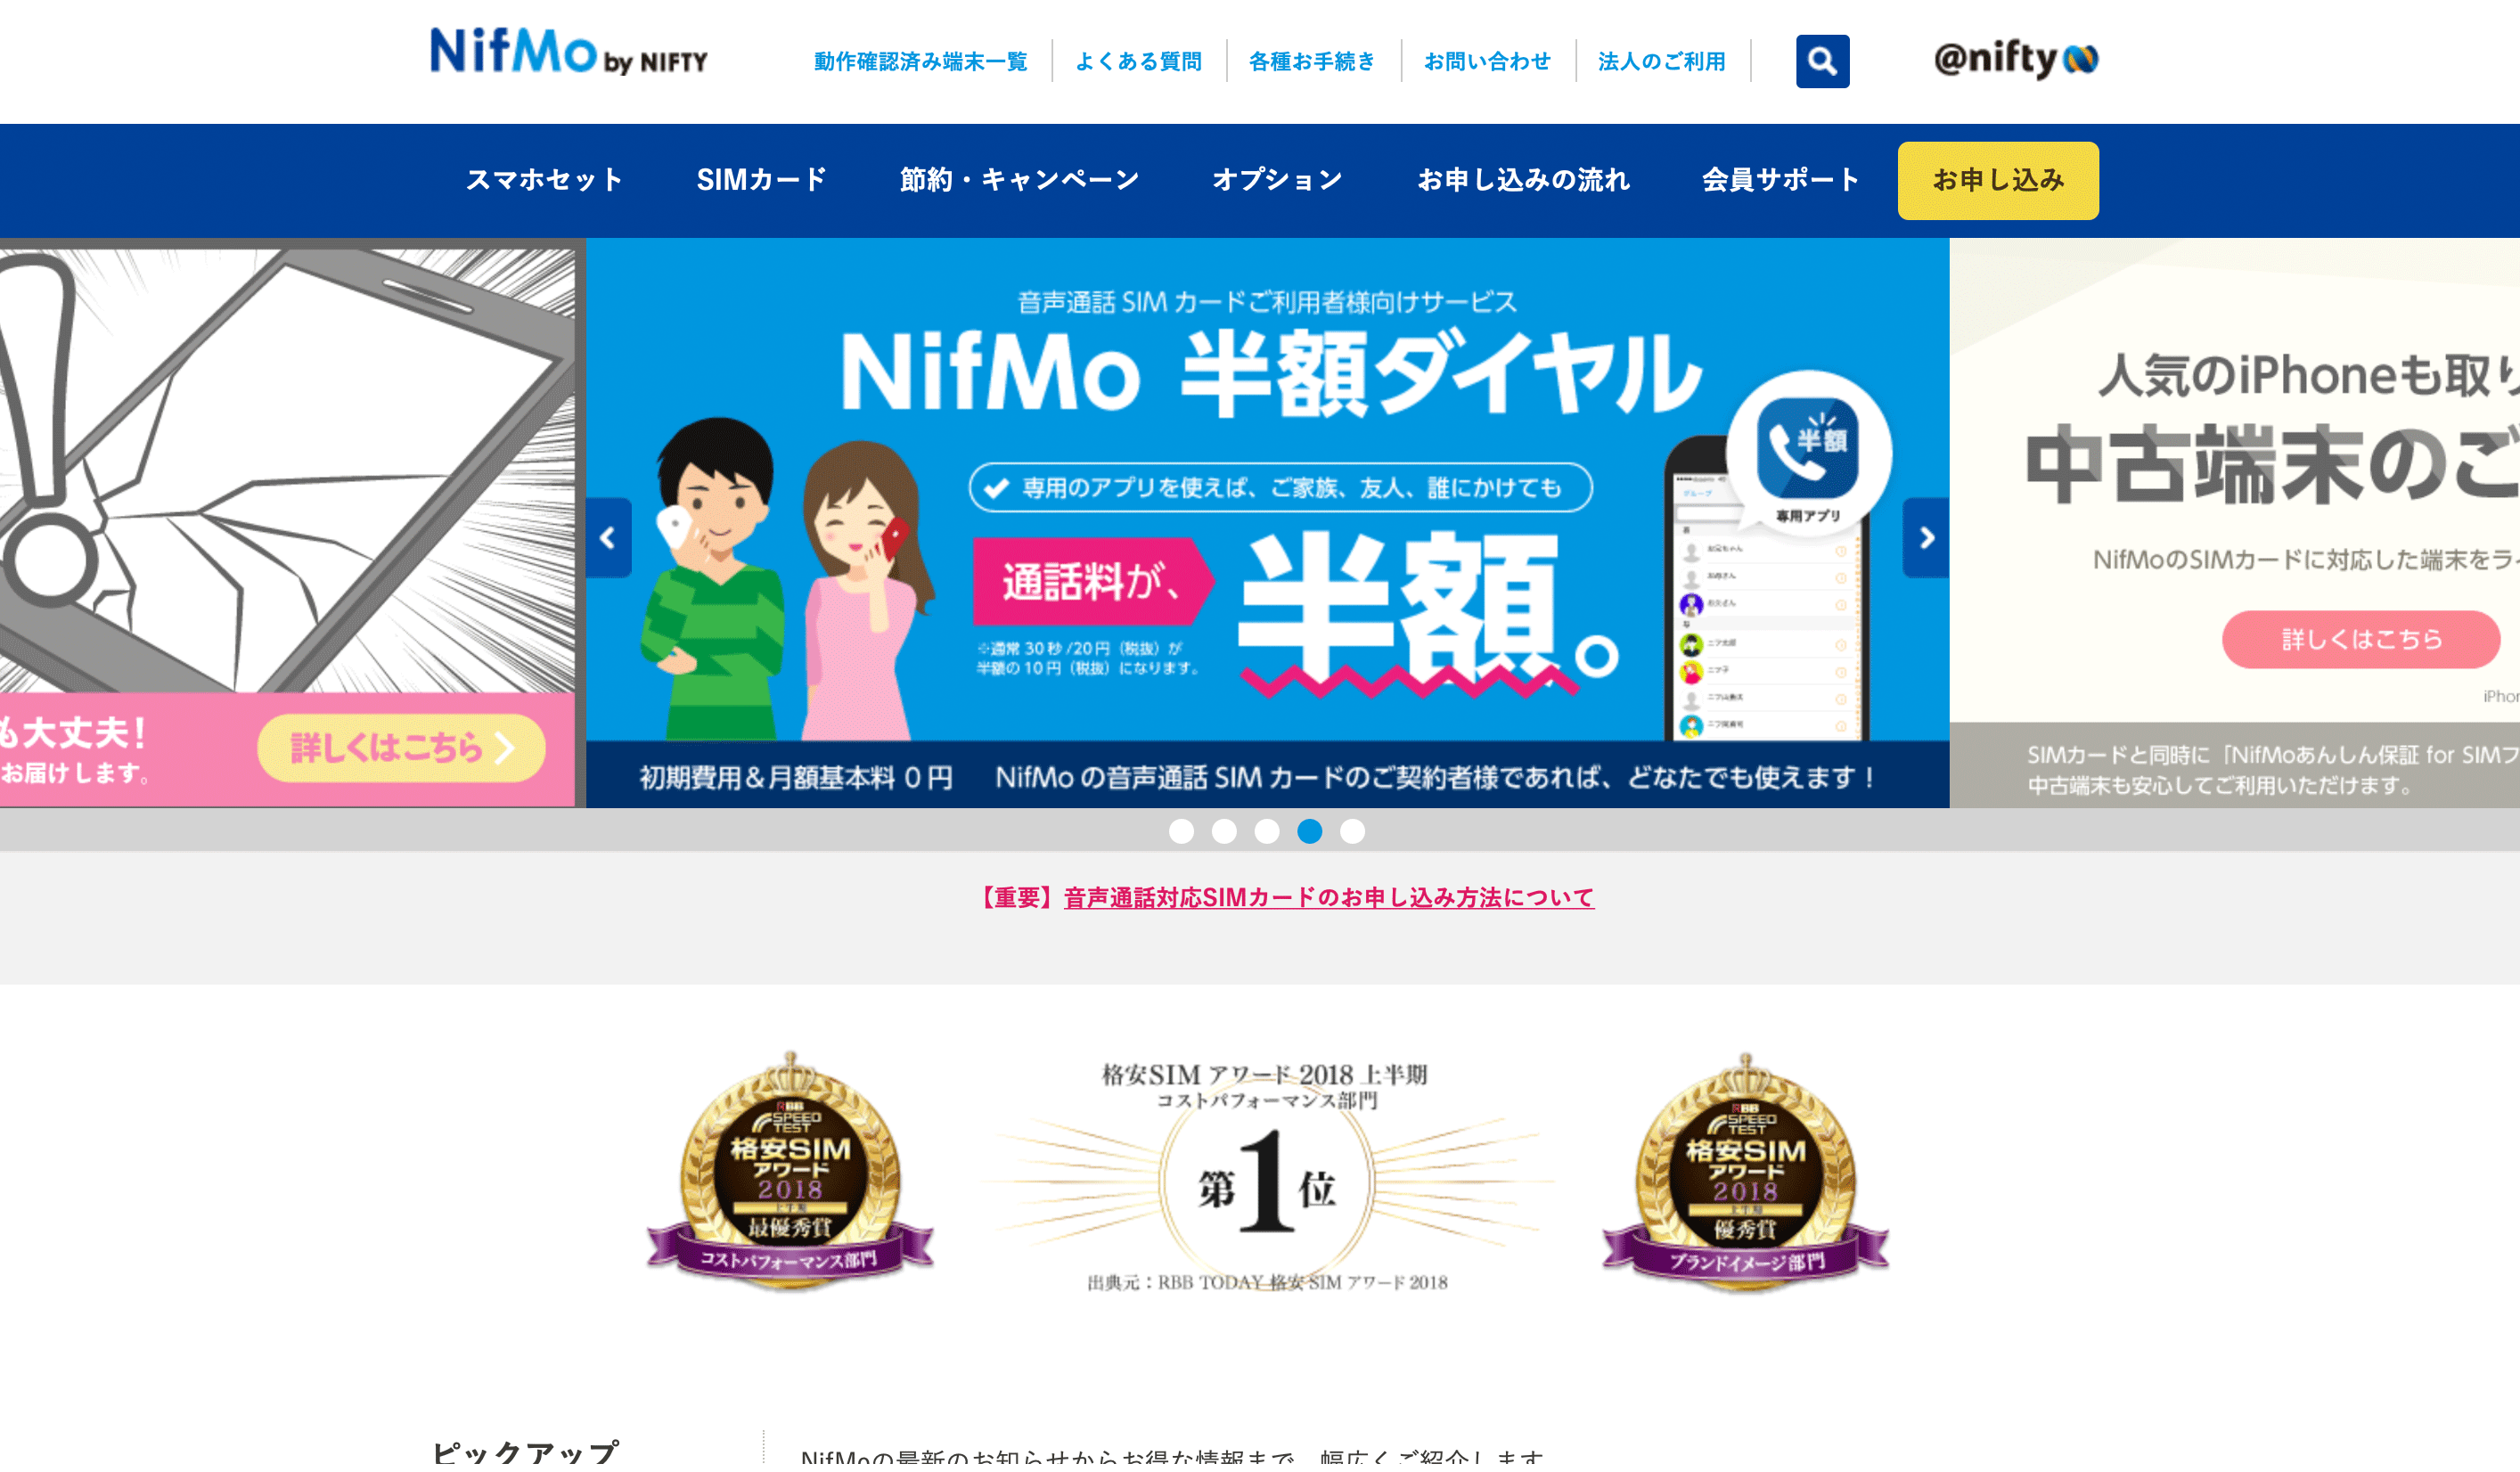 @nifty do LTE『NifMo』話題の格安スマホ・格安SIM(MVNO)